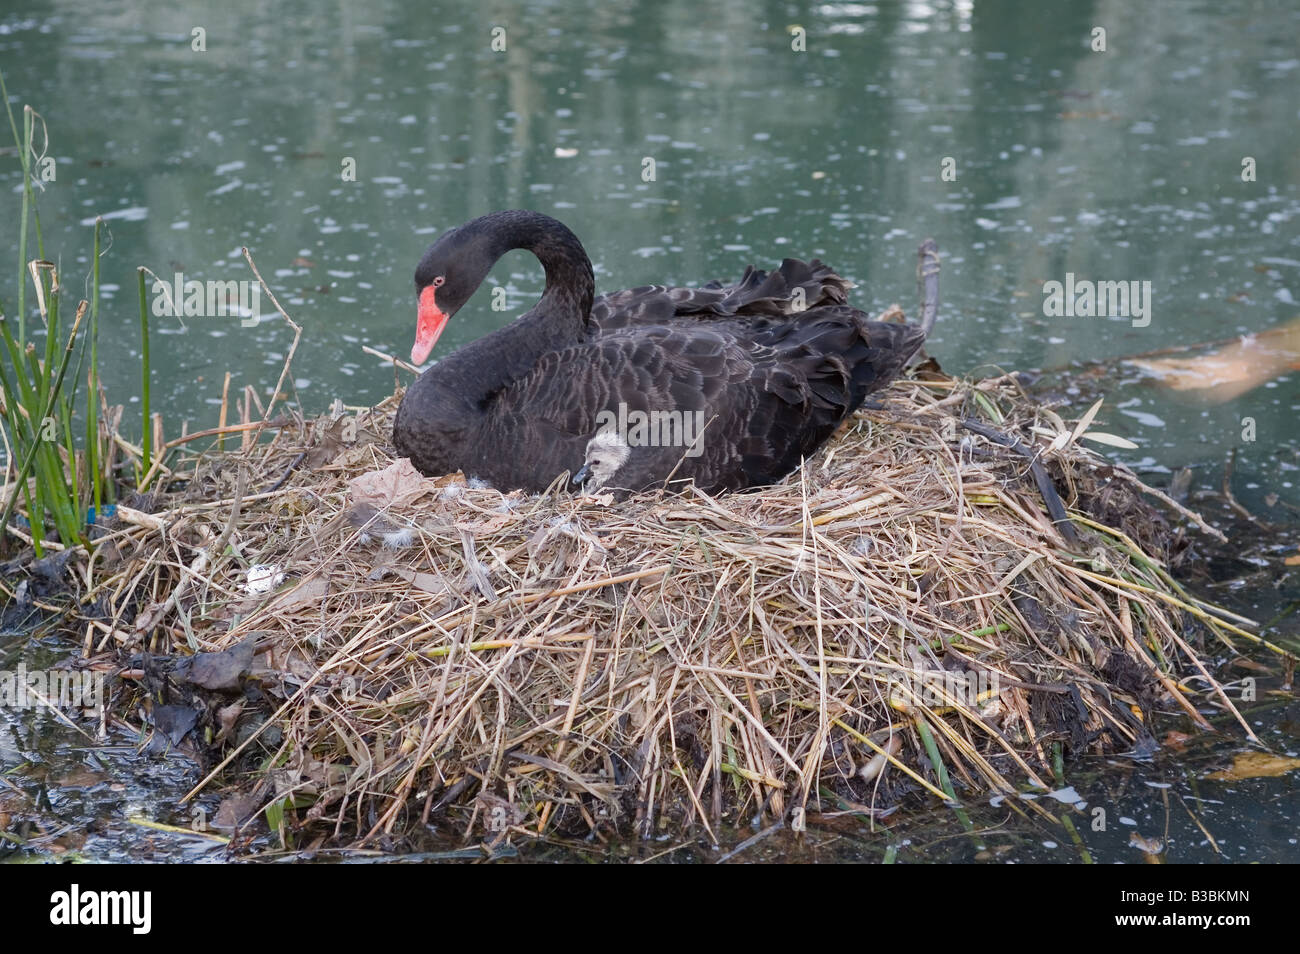 A Western Australian black swan on its nest in Perth with cygnet visible - Stock Image